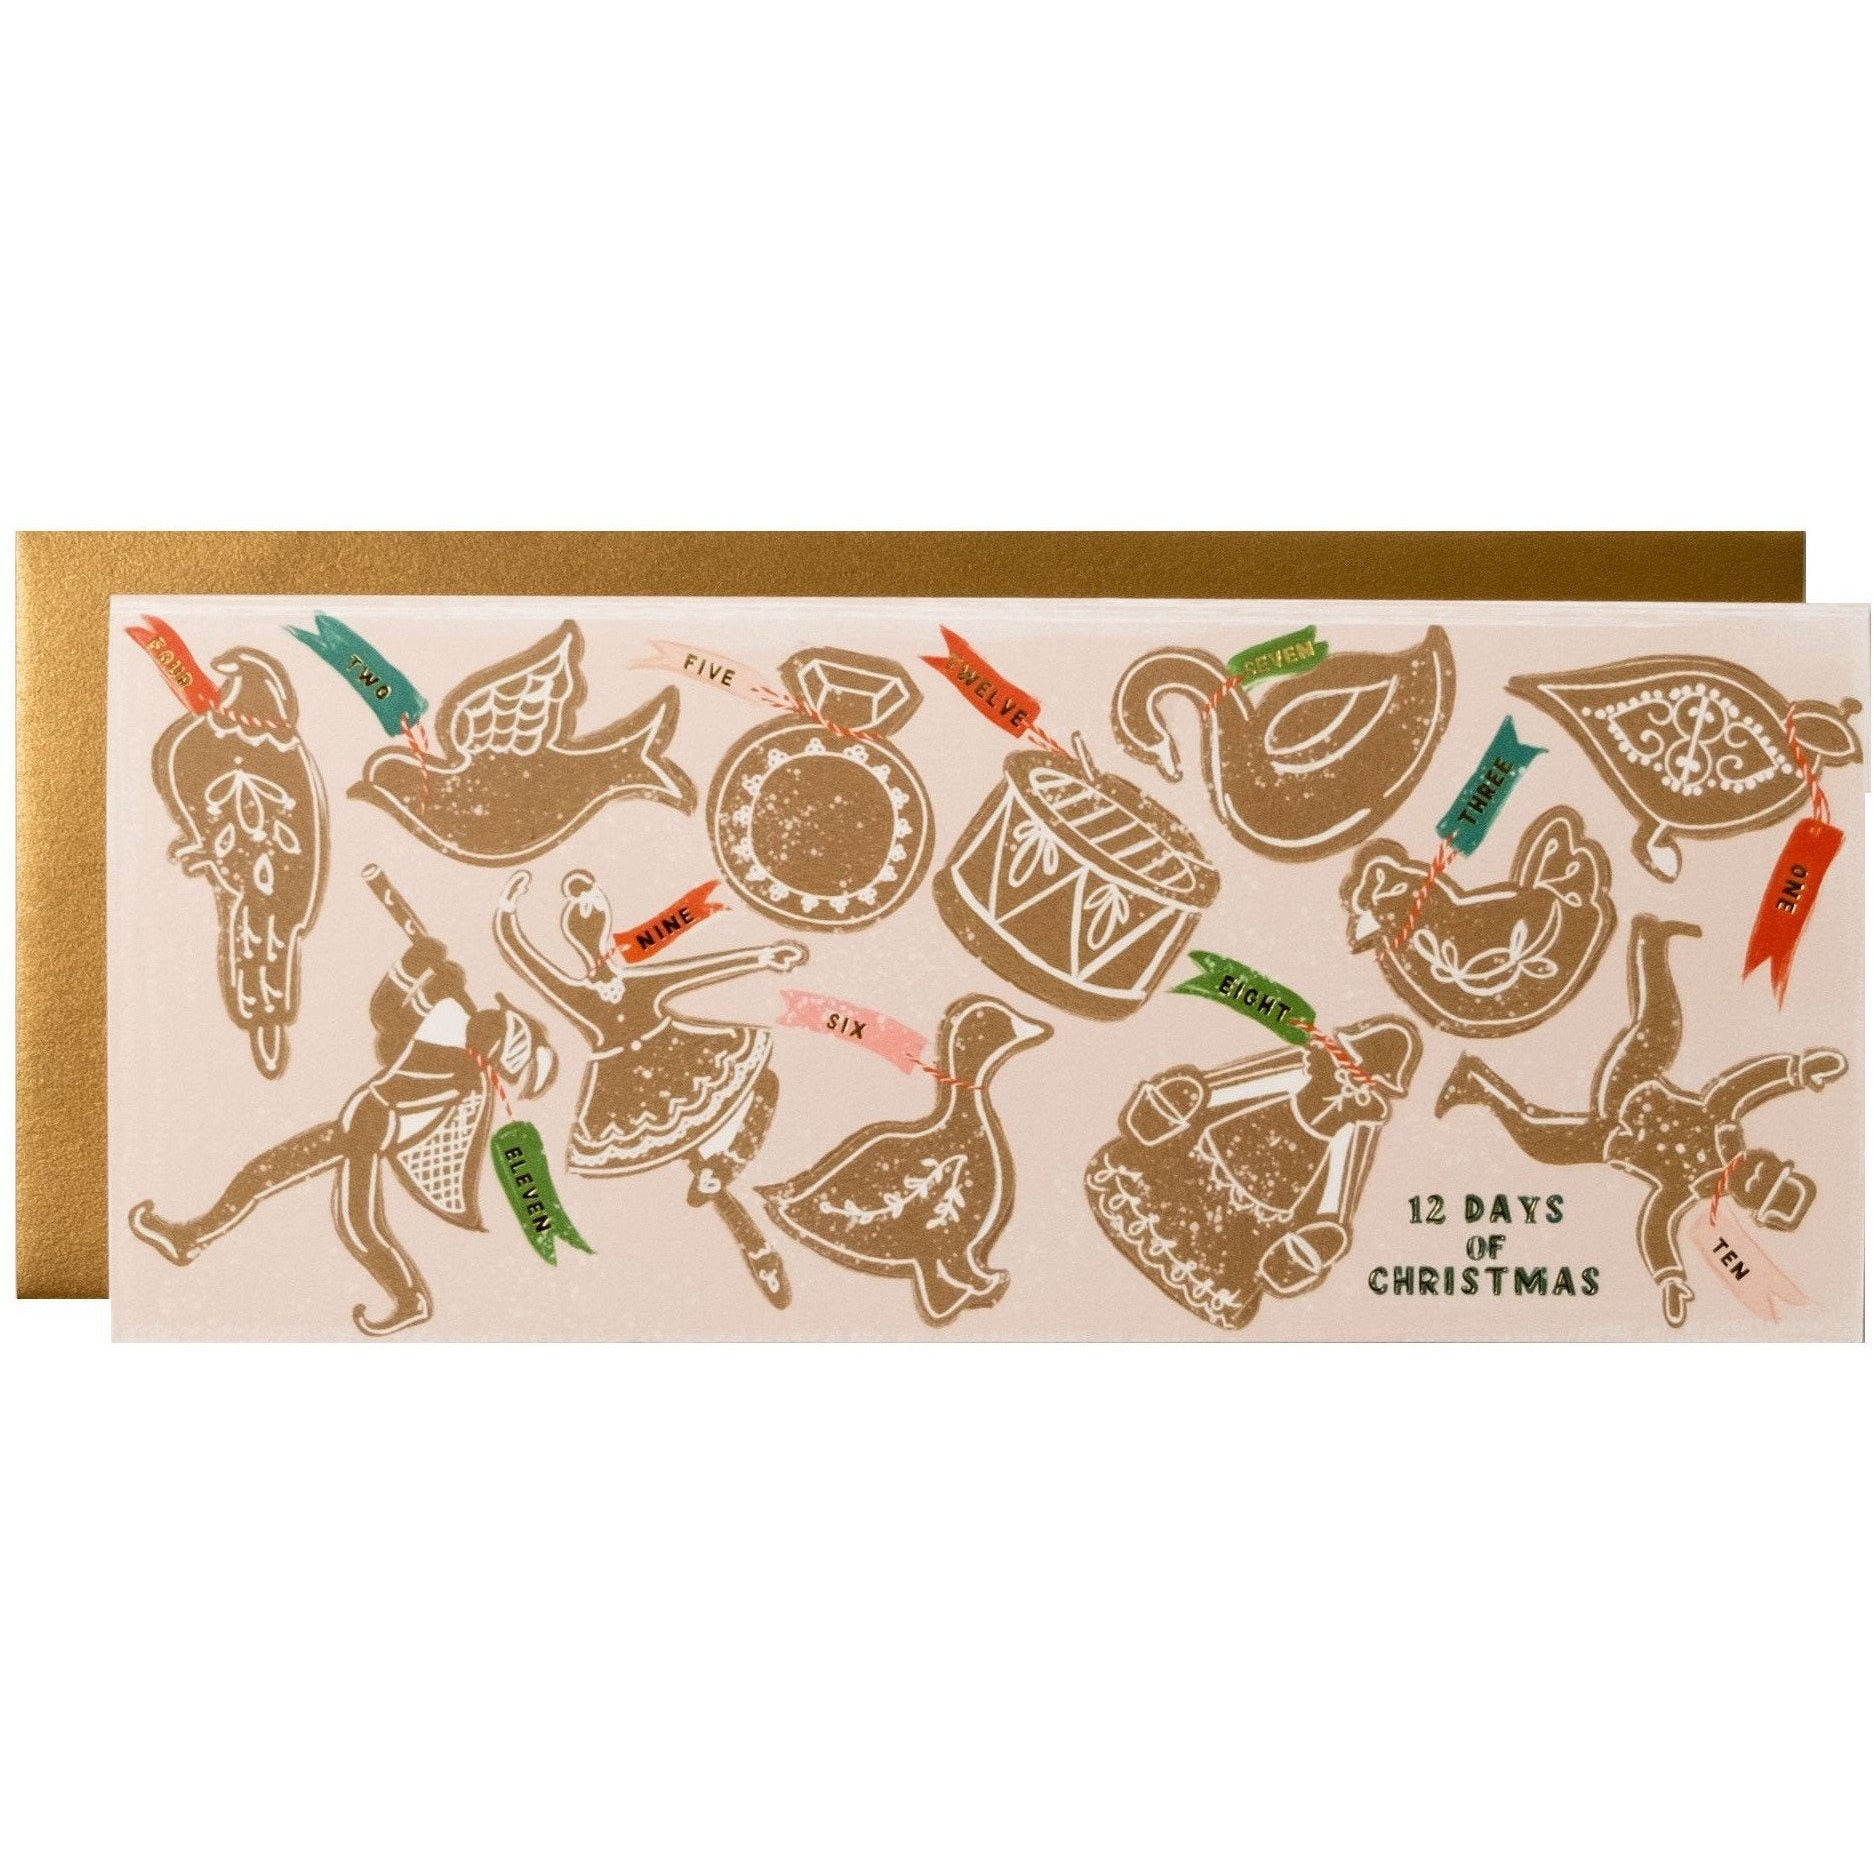 Gingerbread Cookie 12 Days of Christmas Long Holiday Card with Gold Envelope - The First Snow